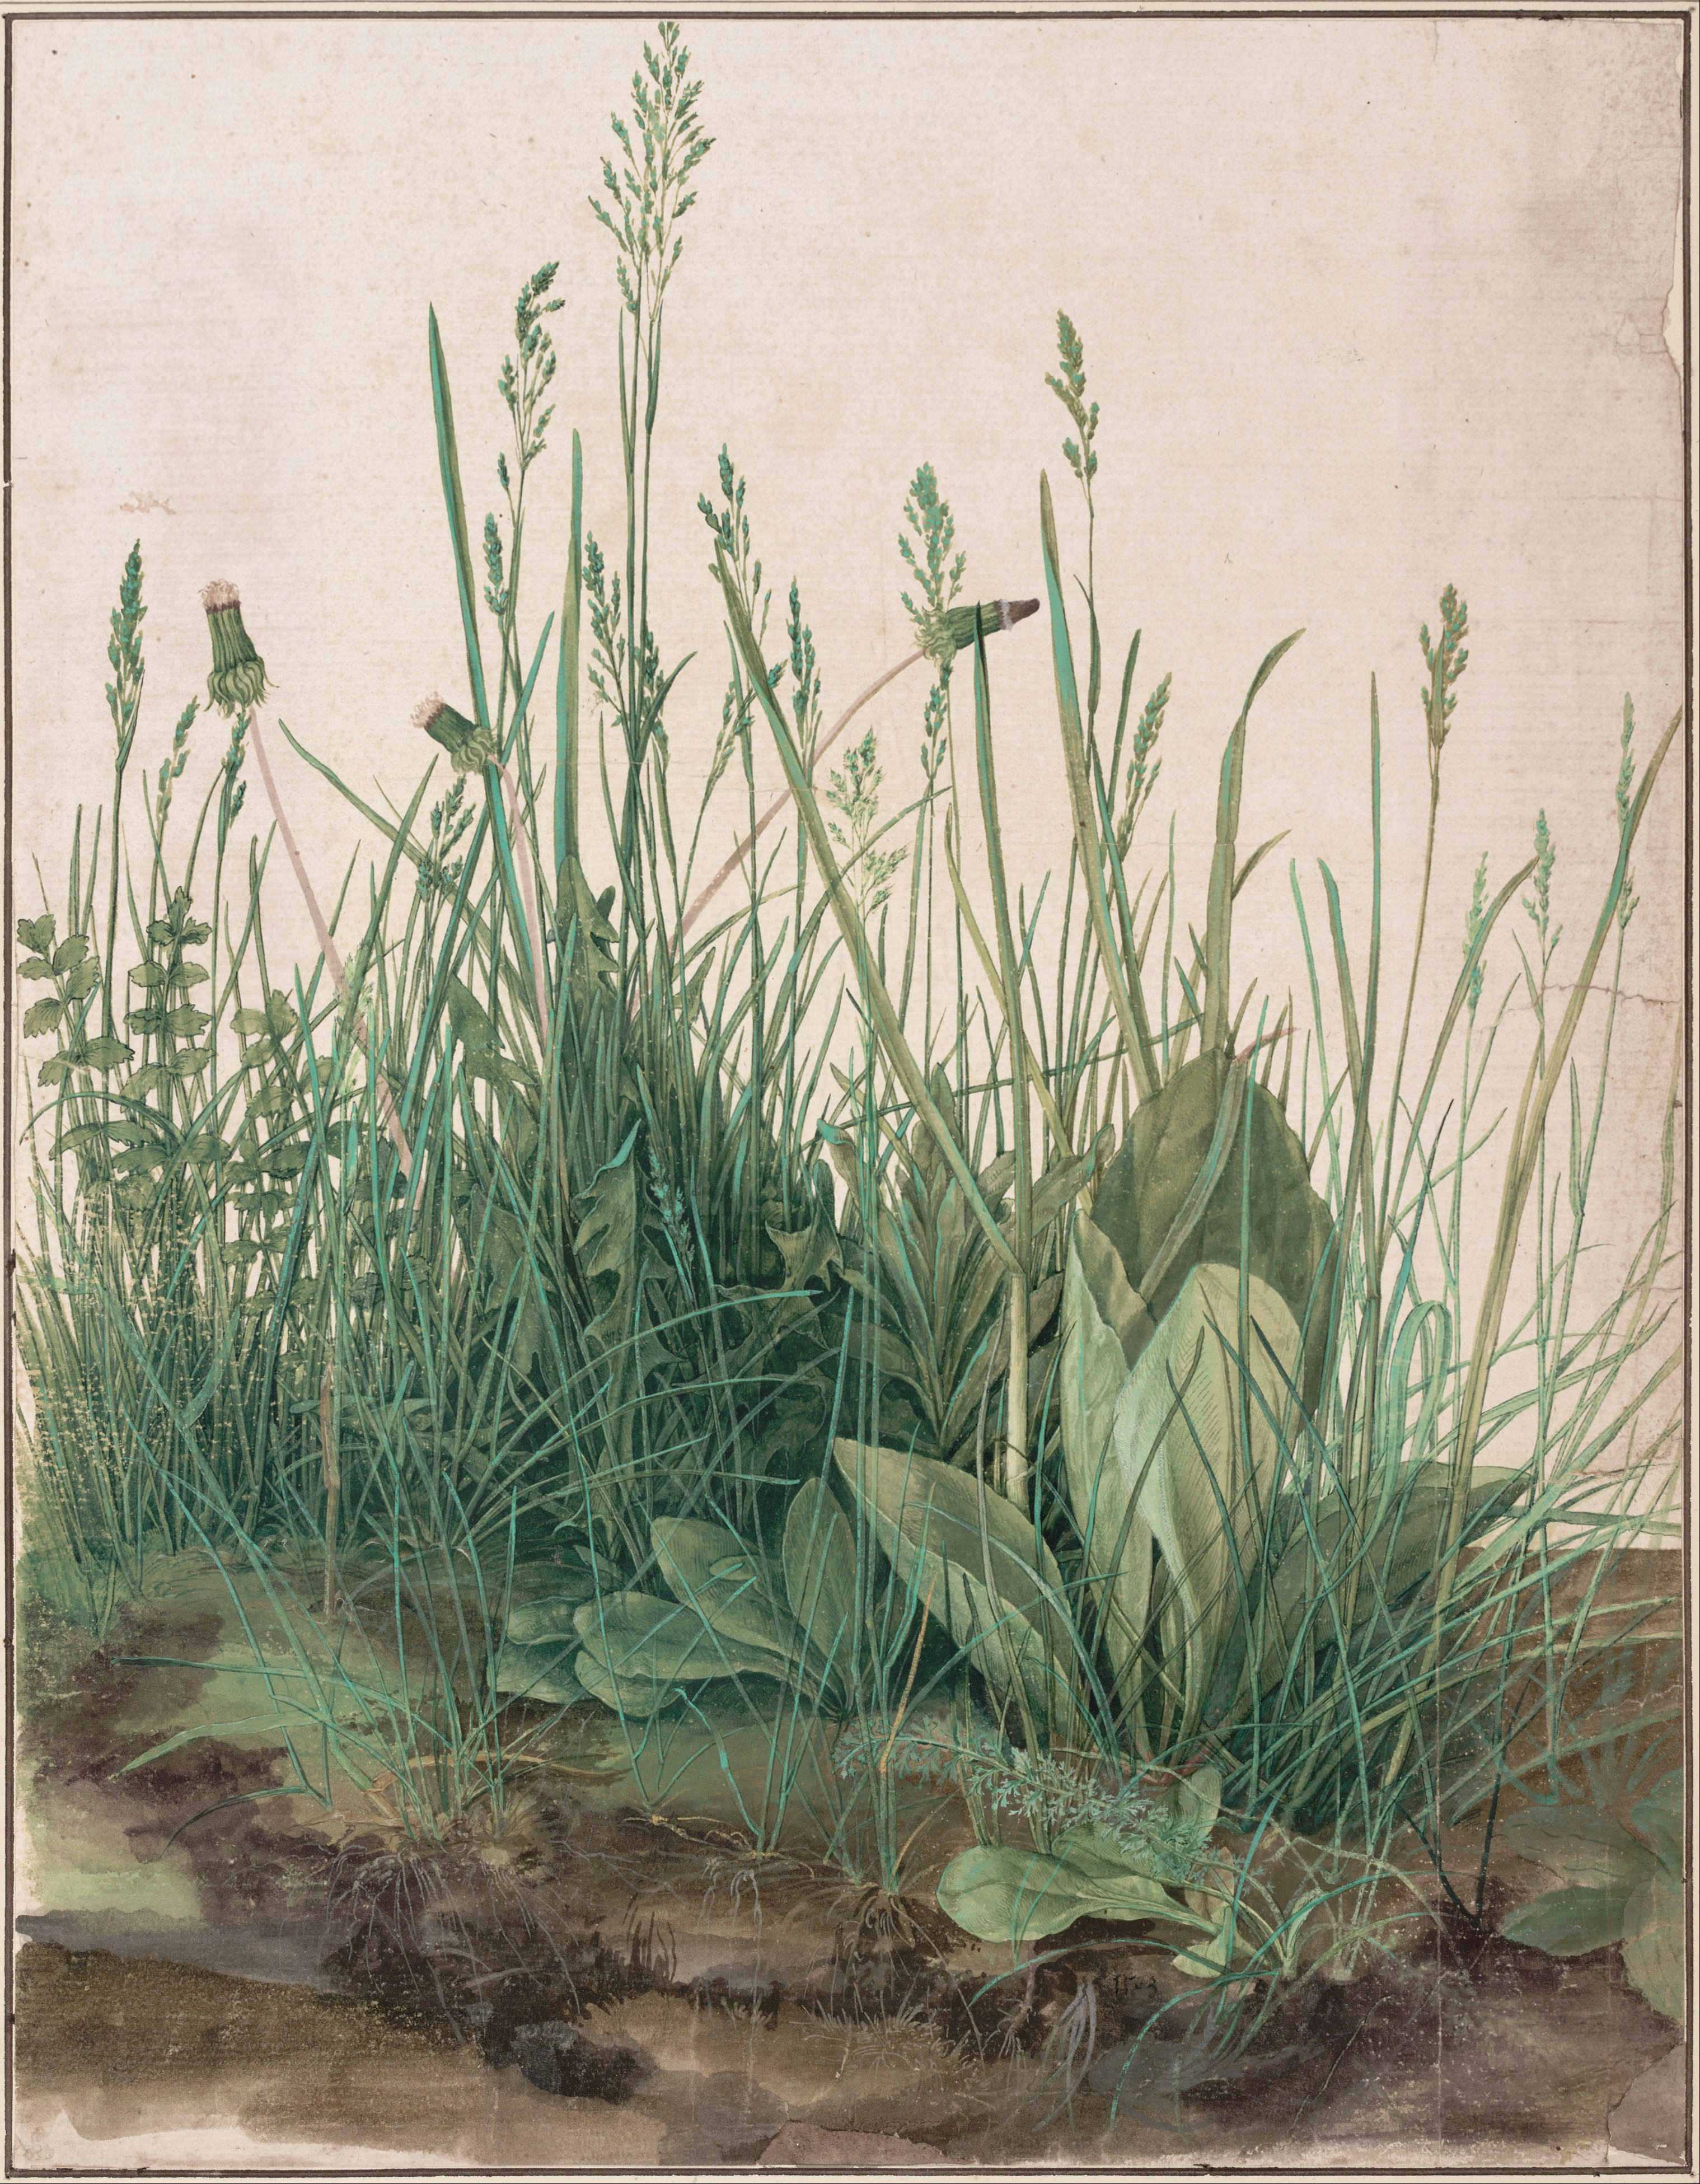 https://i2.wp.com/upload.wikimedia.org/wikipedia/commons/f/f6/Albrecht_D%C3%BCrer_-_The_Large_Piece_of_Turf%2C_1503_-_Google_Art_Project.jpg